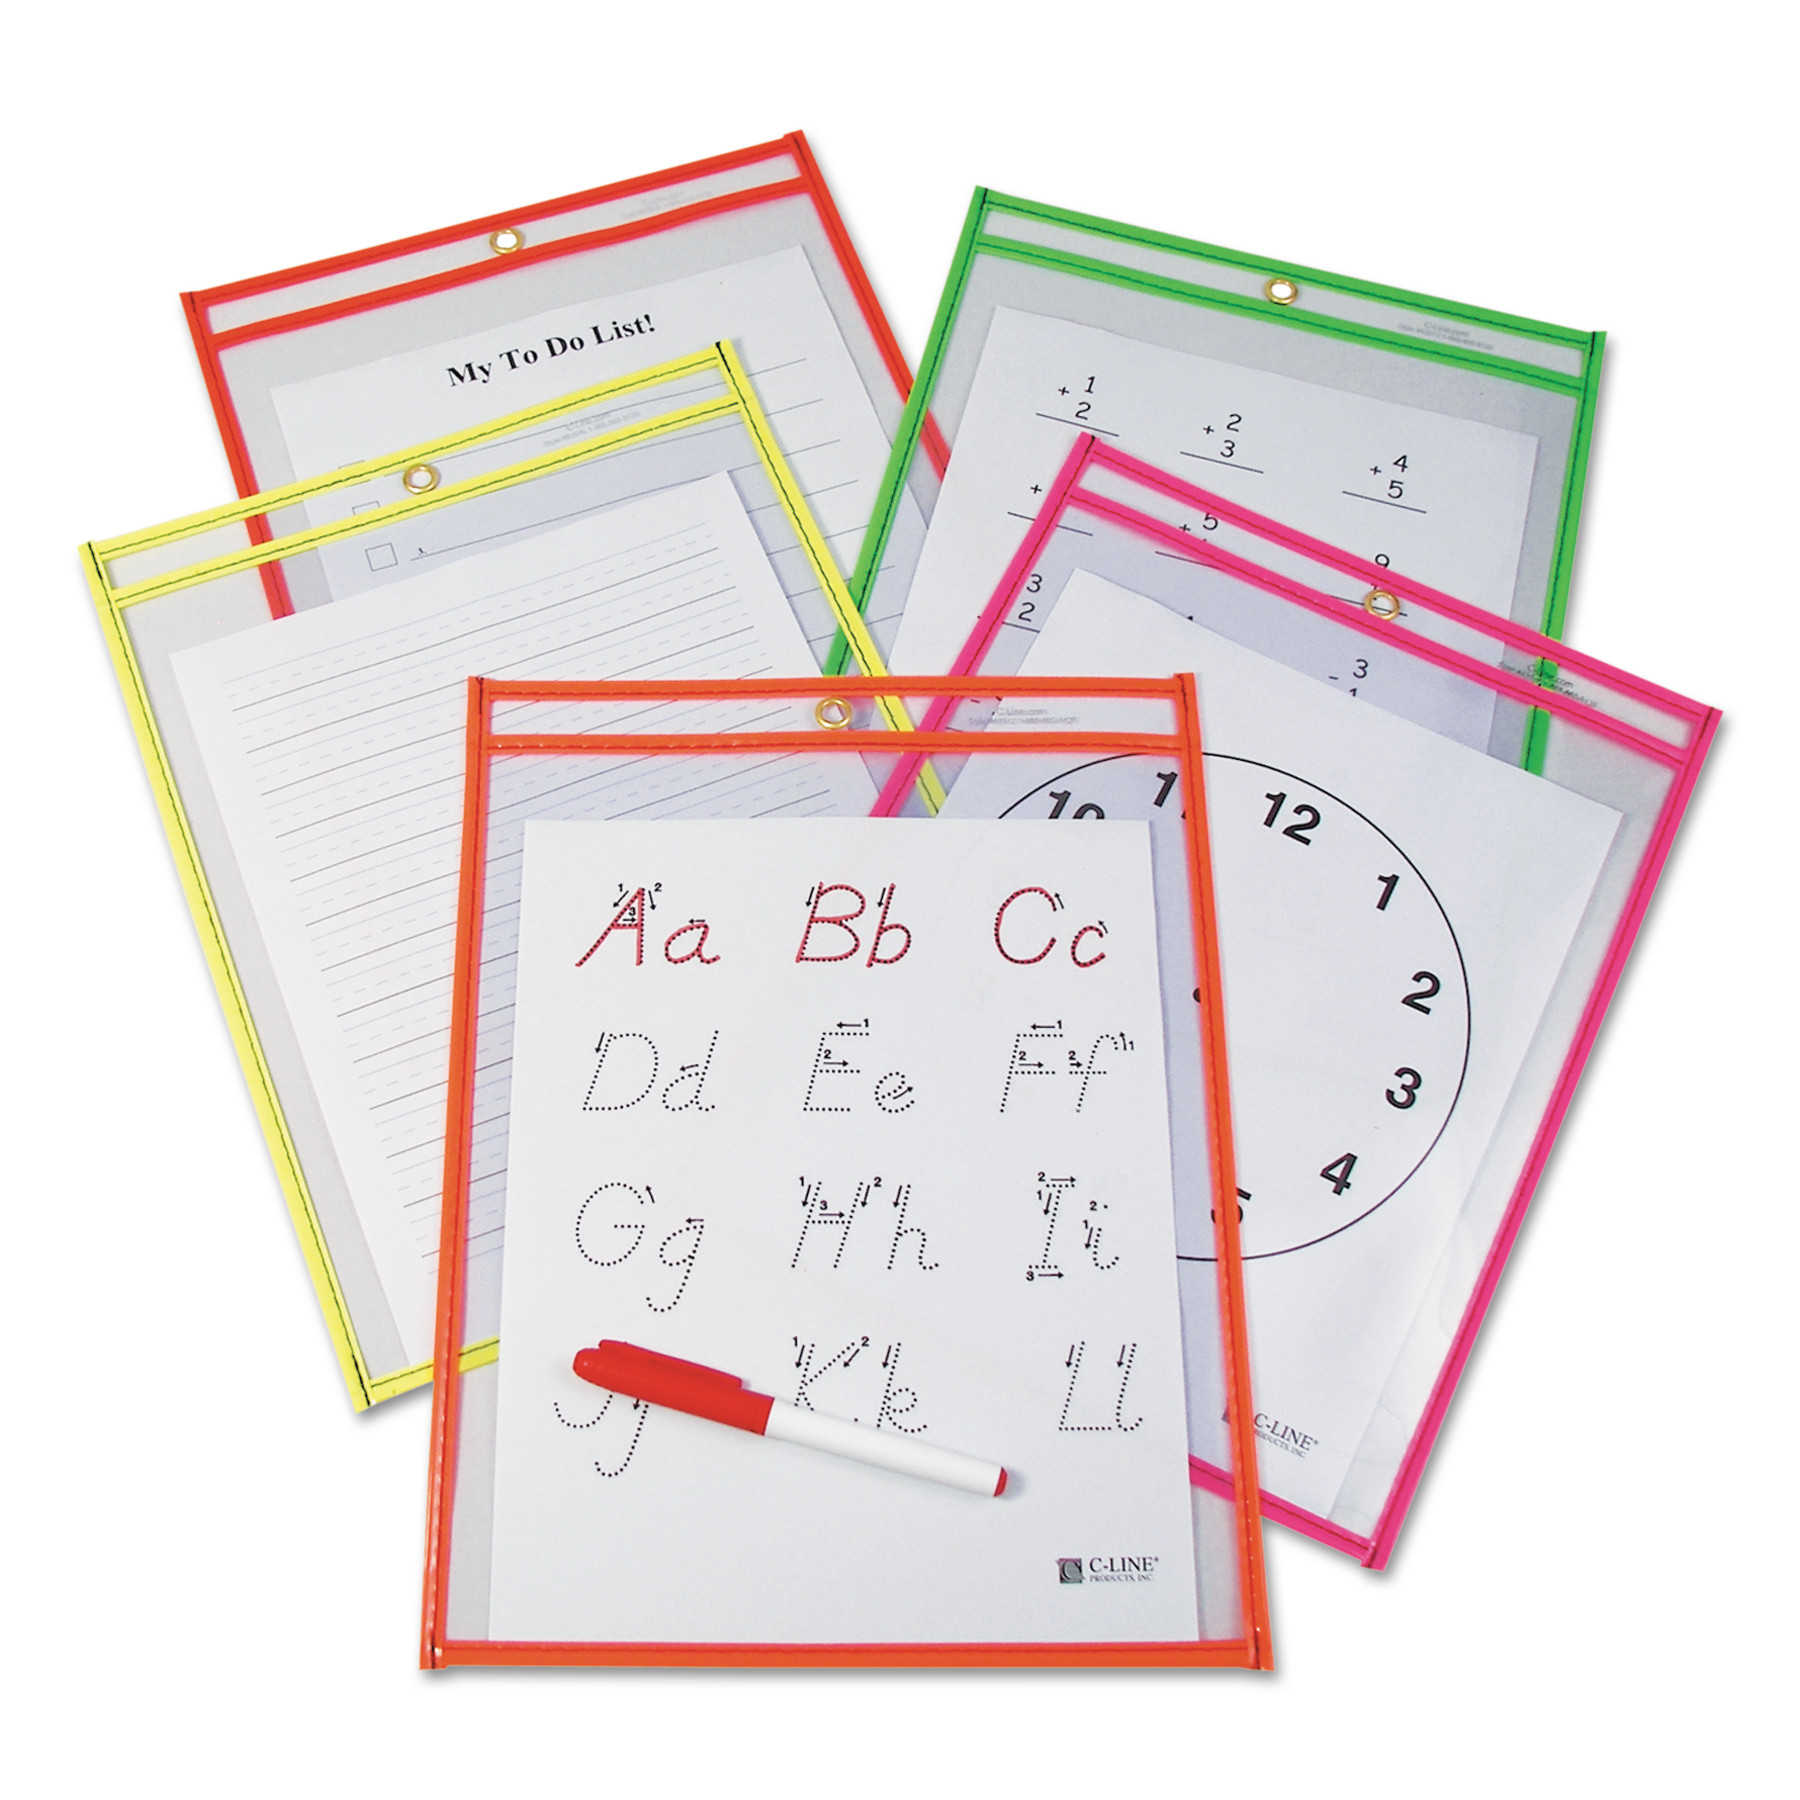 C-Line Reusable Dry Erase Pockets, 9 x 12, Assorted Neon Colors, 10/Pack -CLI40810